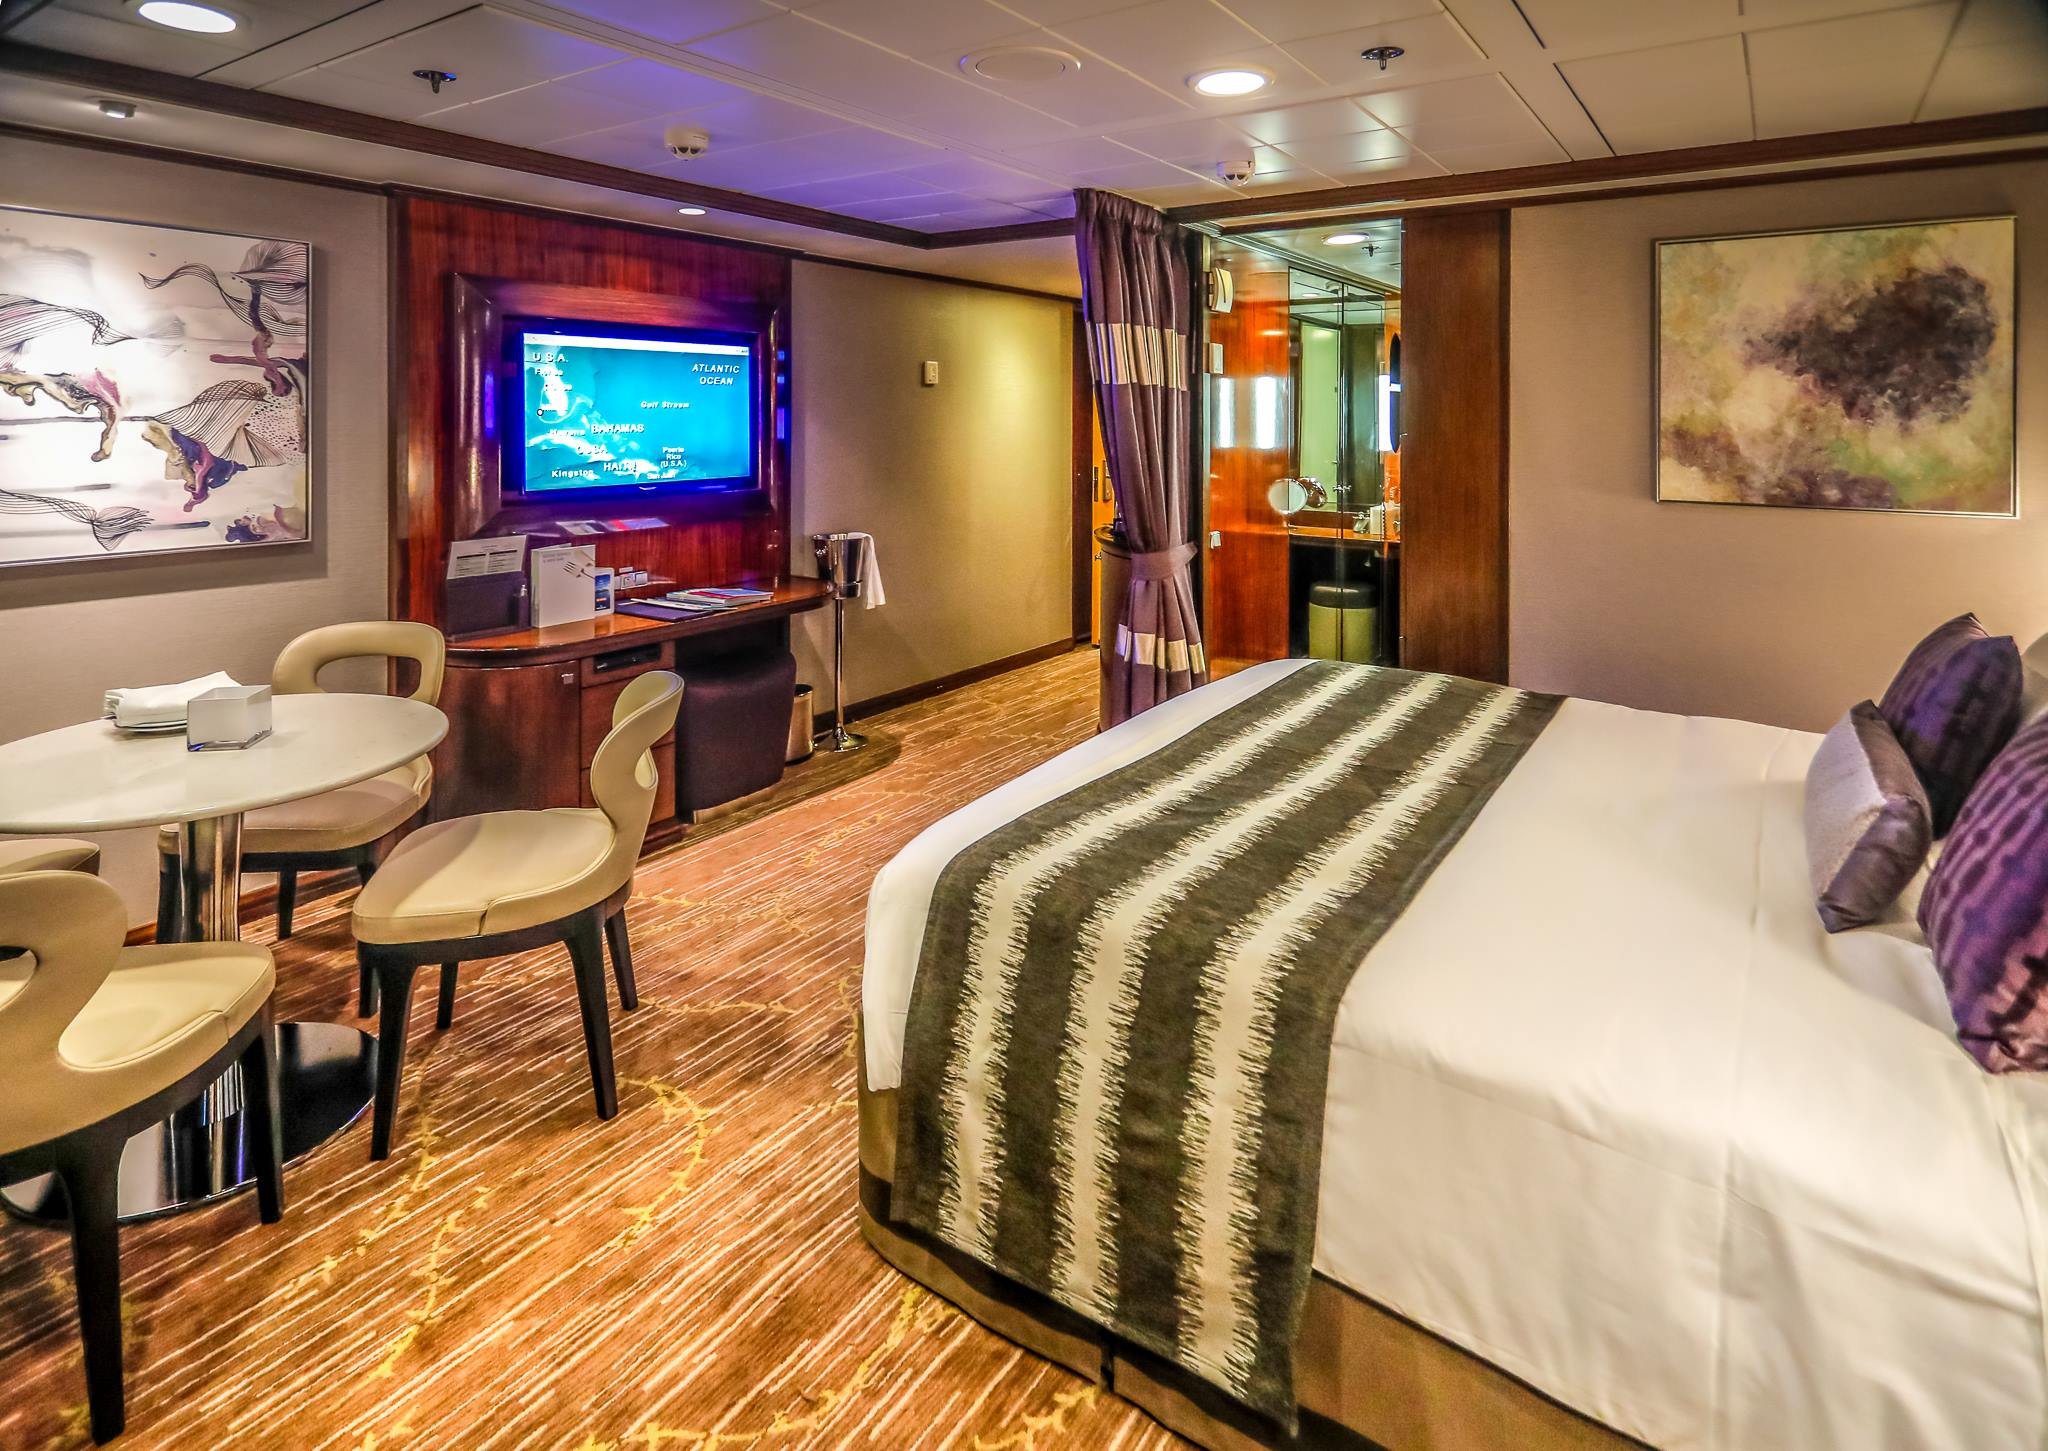 25 Tips to Save BIG on Your Next Cruise - Cruise Inner rooms